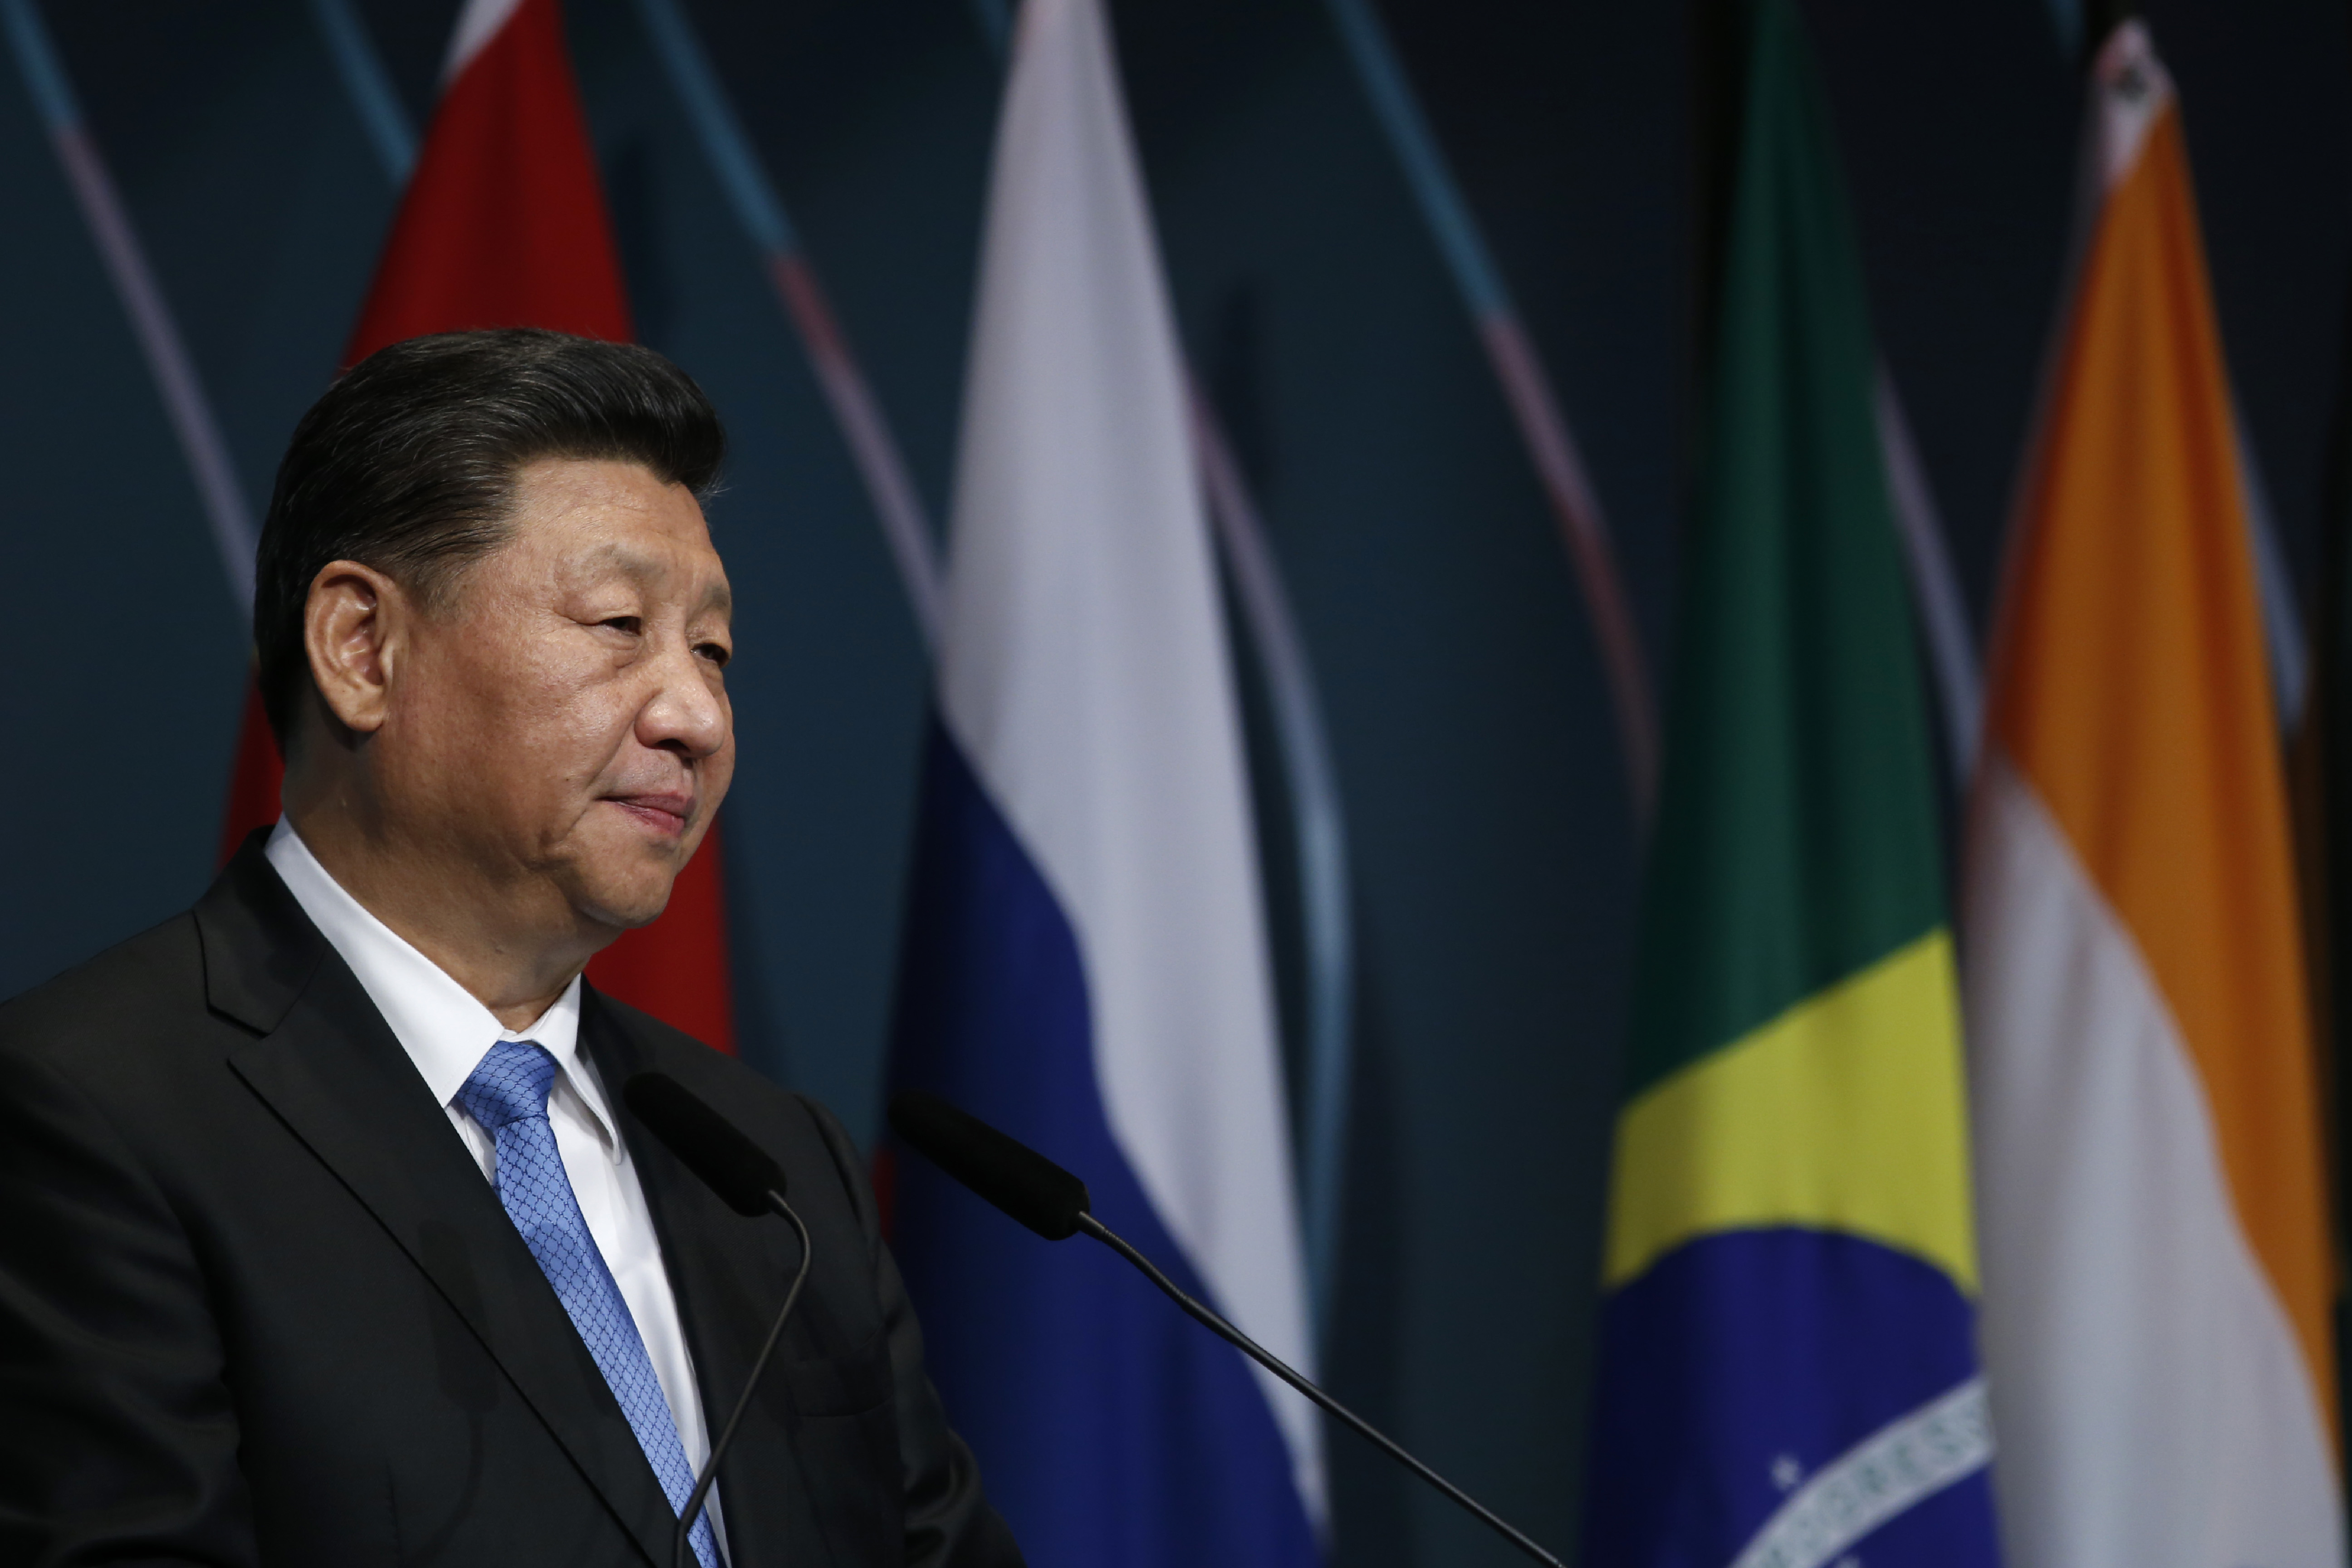 Under Xi's leadership, China is losing friends, alienating allies